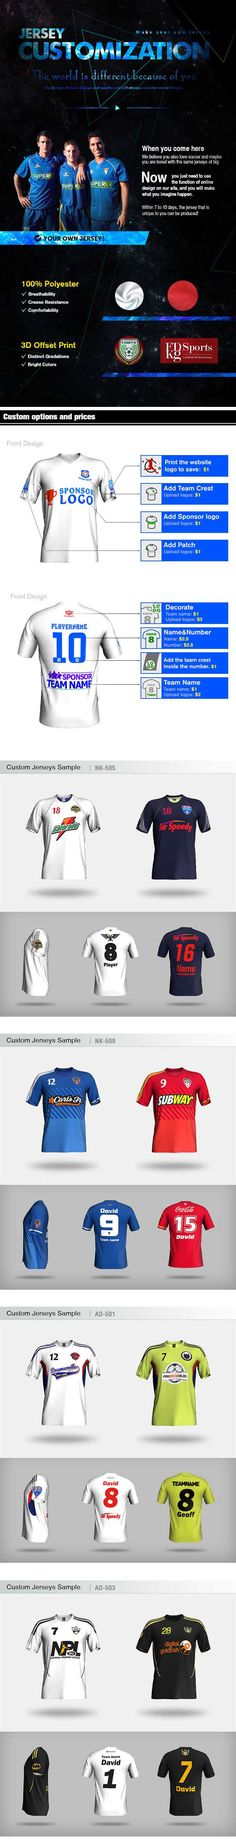 Model-020 Customize Team Red&White Soccer Jersey Shirt | Customize Team Kit Jersey Shirt sale | Custombbs